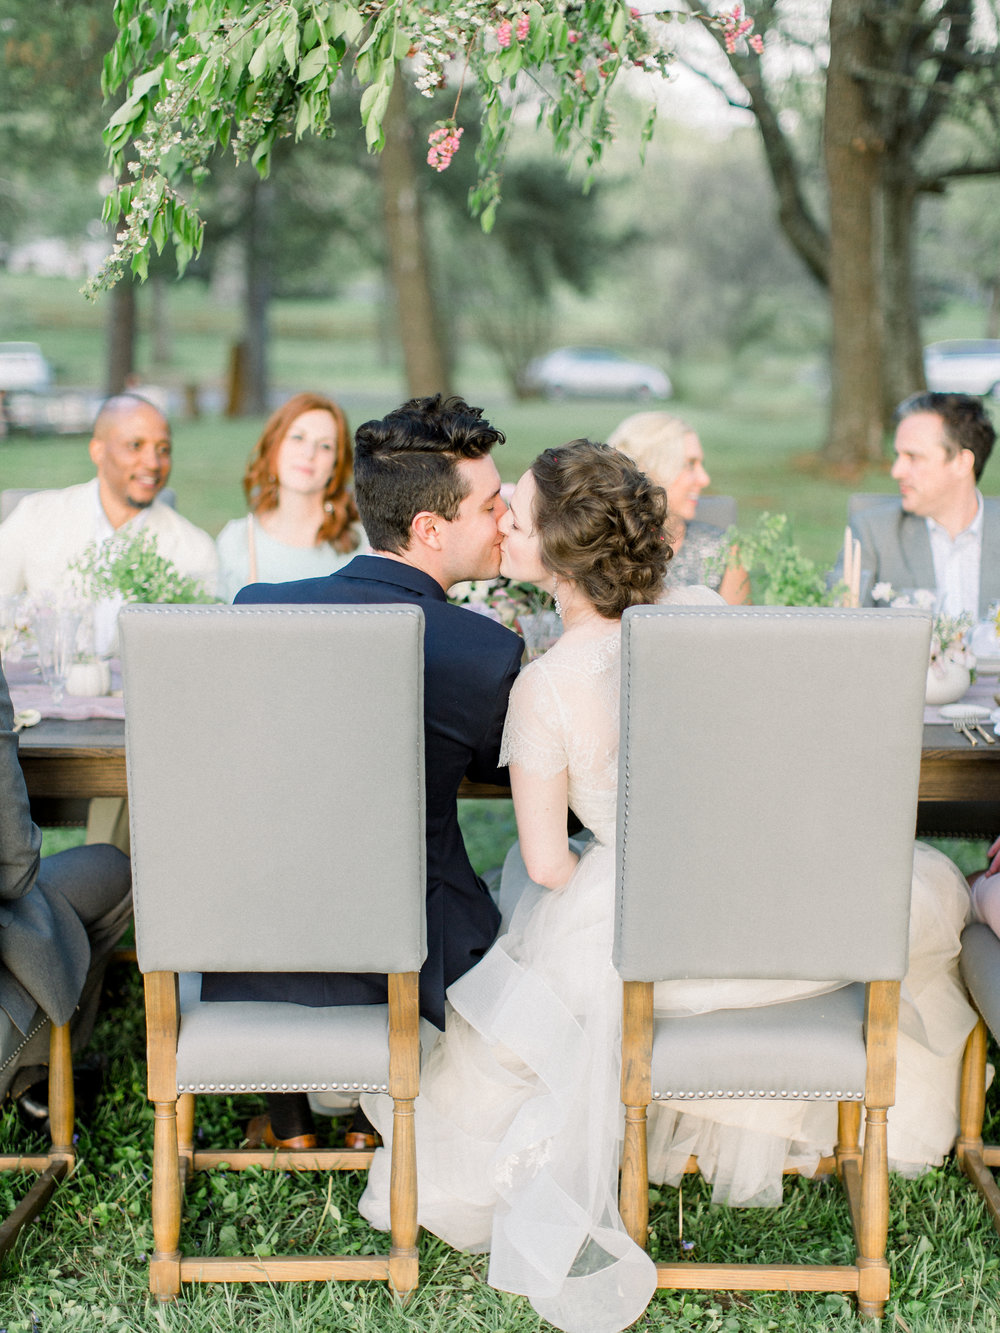 $800 For A Limited Time - discounted from $1500Our Day Of Coordination Services are available for a limited time through September 30, 2018 discounted at nearly 50% off our normal pricing of $1500. Please inquire for details. Offer expired 7/31/18.